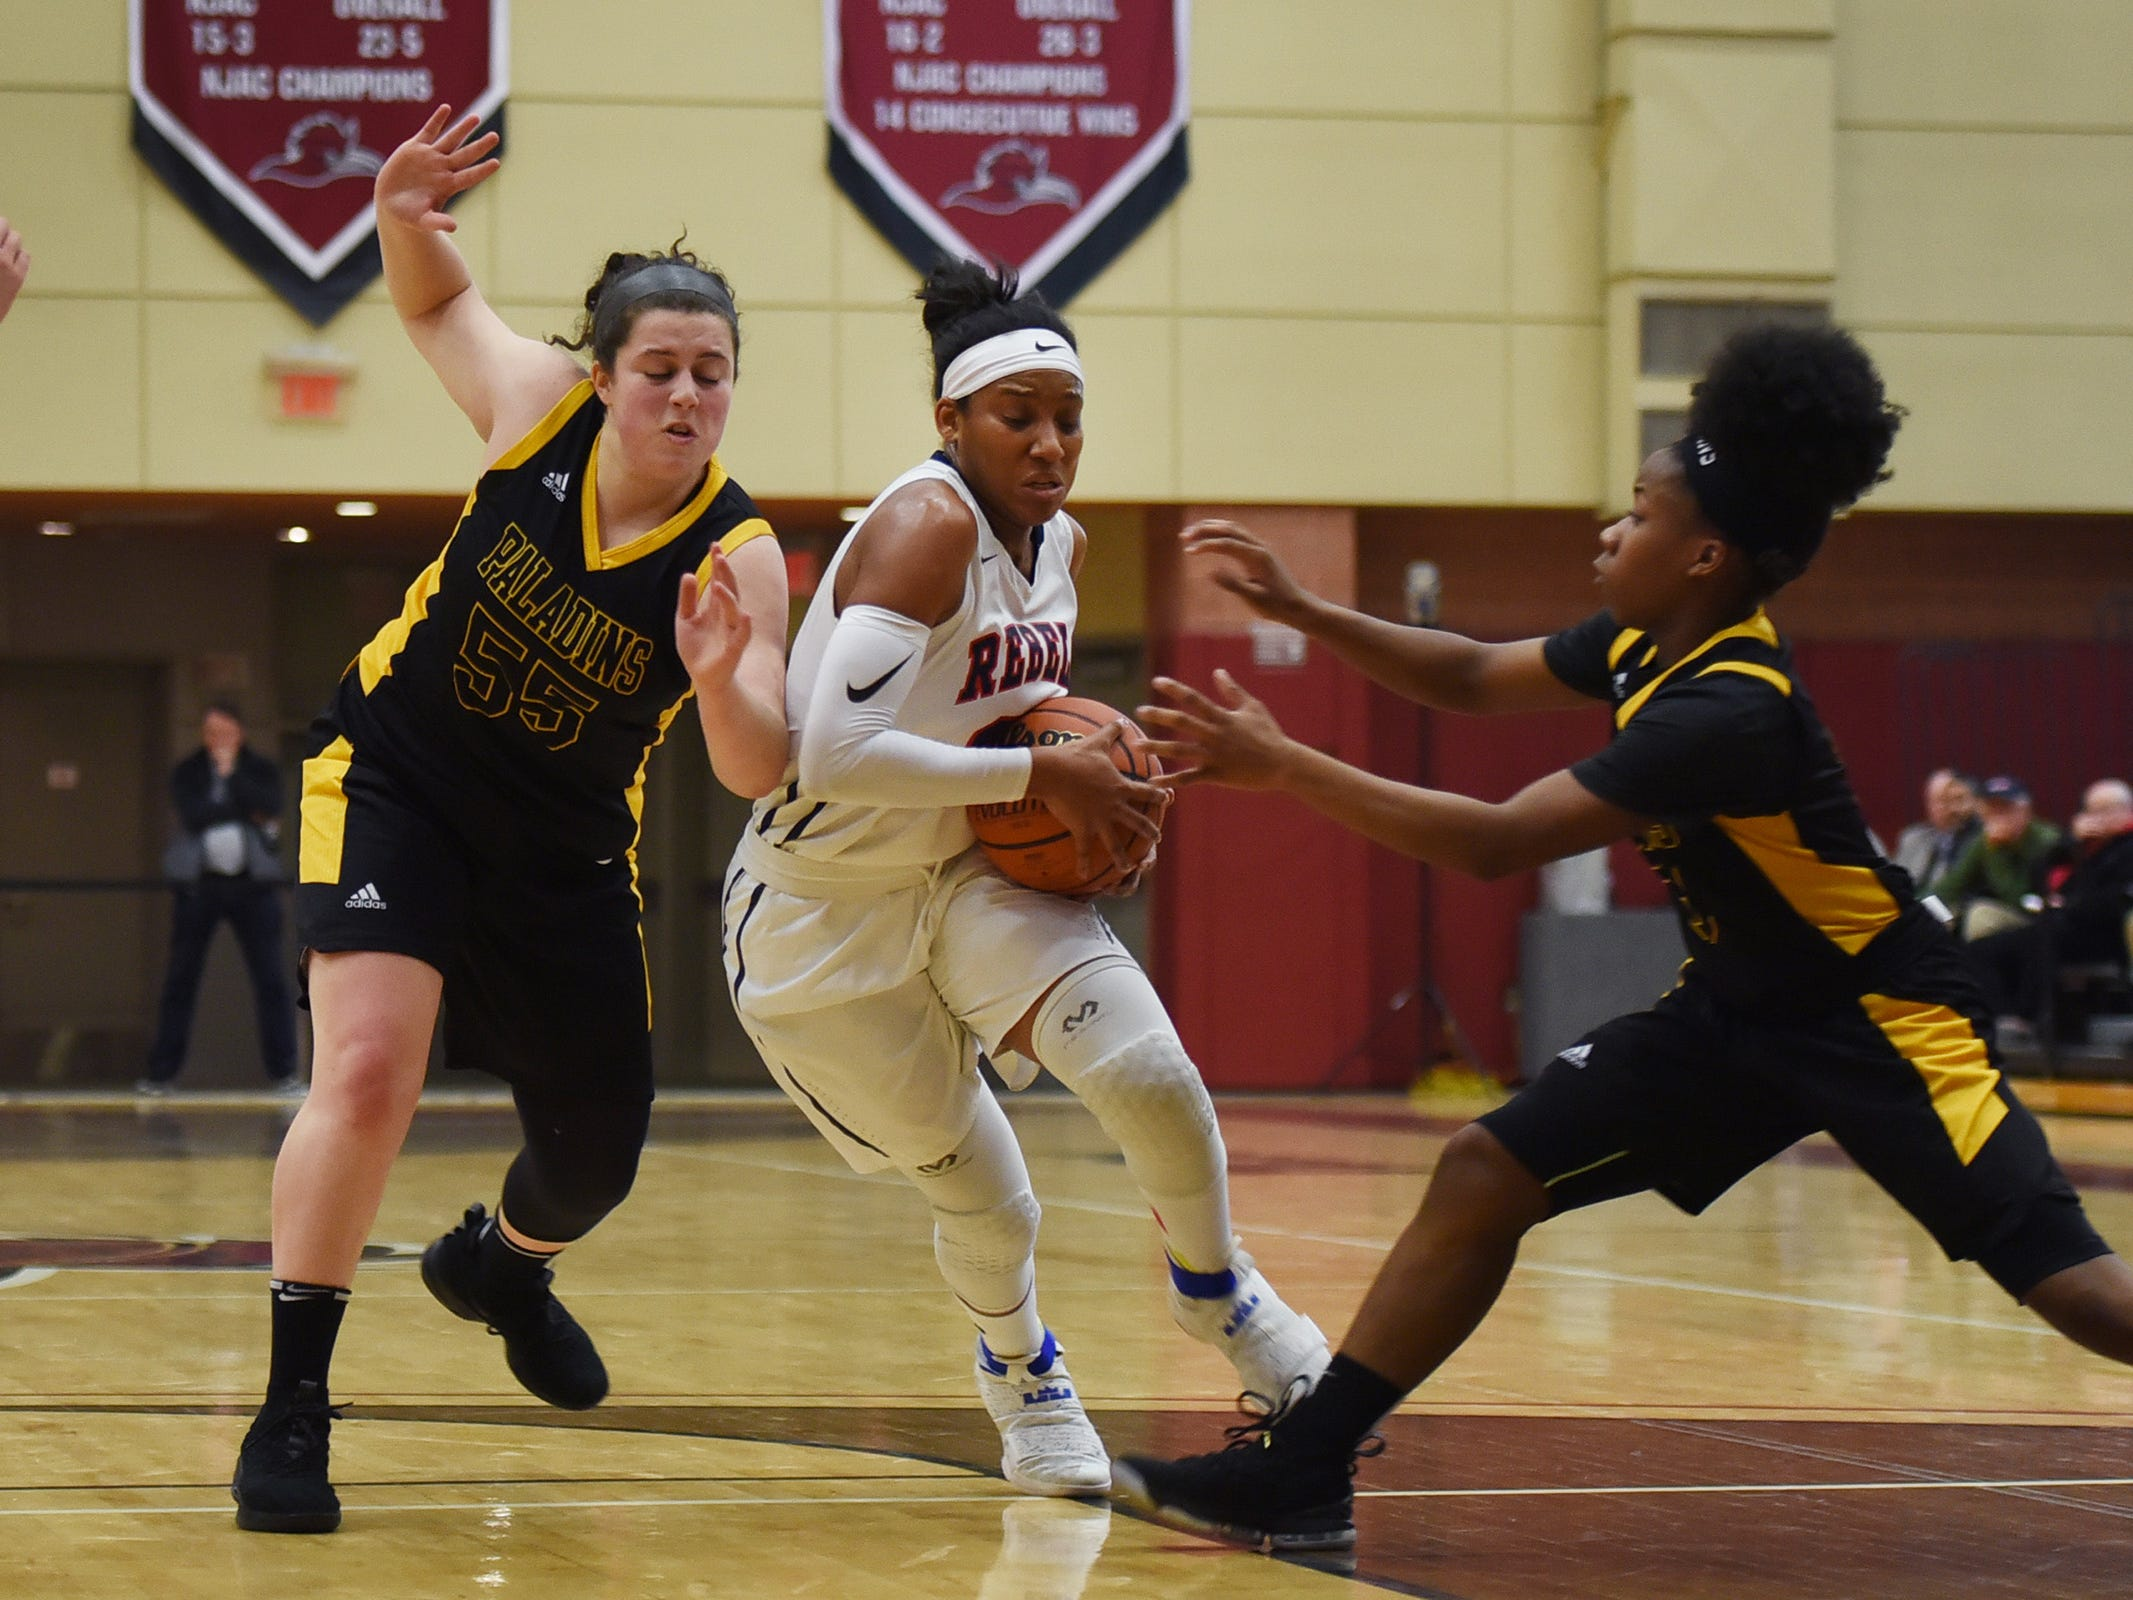 Sydnei Caldwell (no.21) of Saddle River Day makes her way past Julianna Kascic (no.55) and Janel Moore (no.3) of Paramus Catholic in the first half during the 2019 Bergen County girls basketball championship semifinal at Ramapo College in Mahwah on 02/10/19.